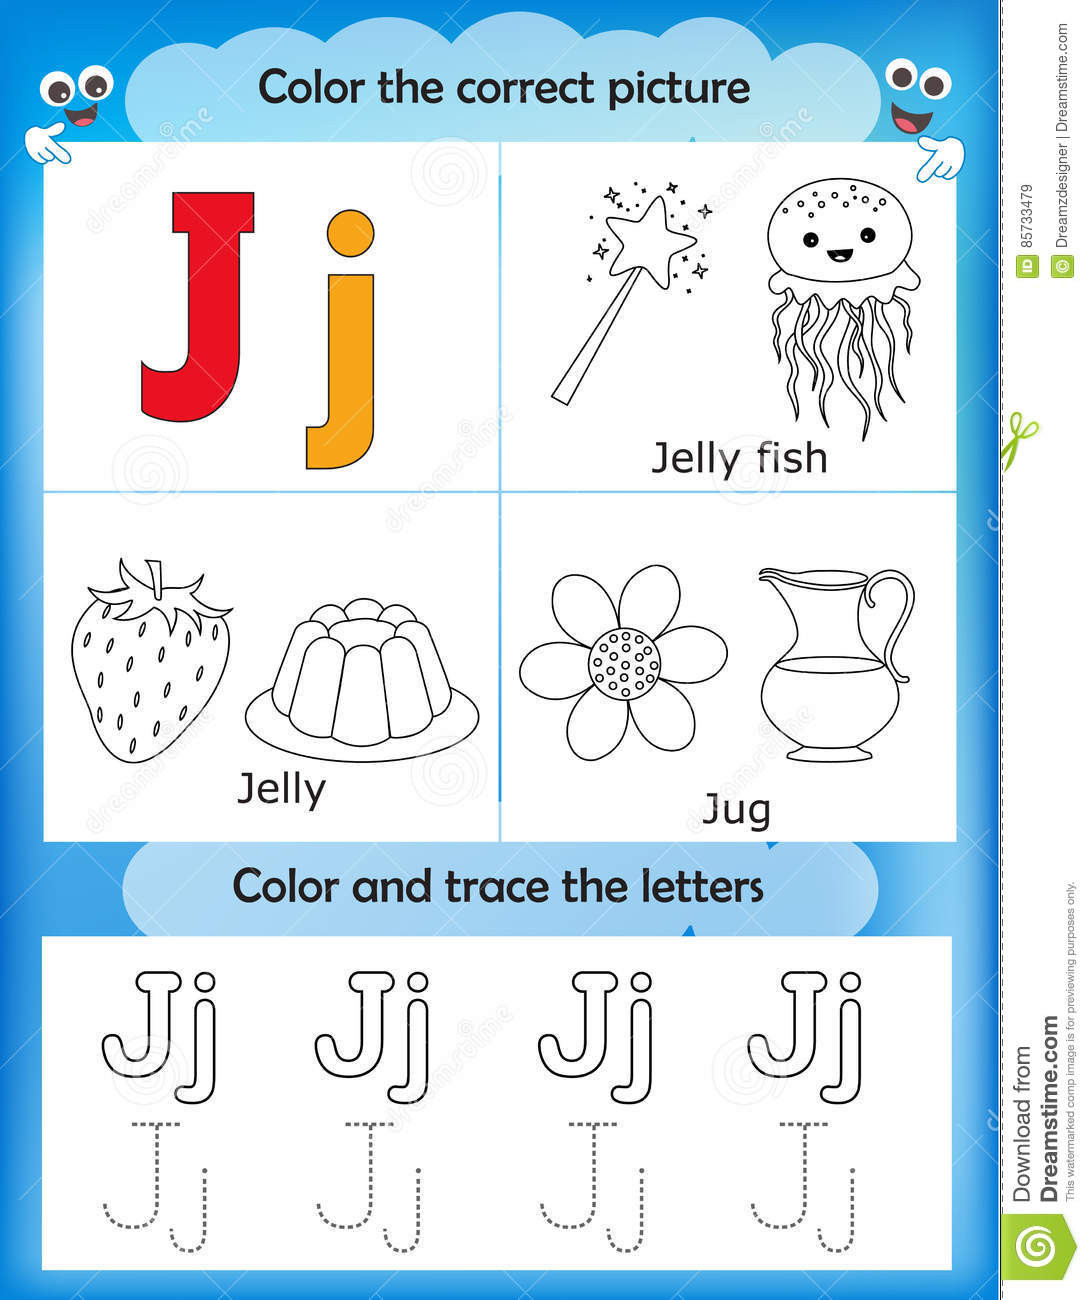 Letter J Worksheets for Preschool Alphabet Learning and Color Letter J Stock Illustration